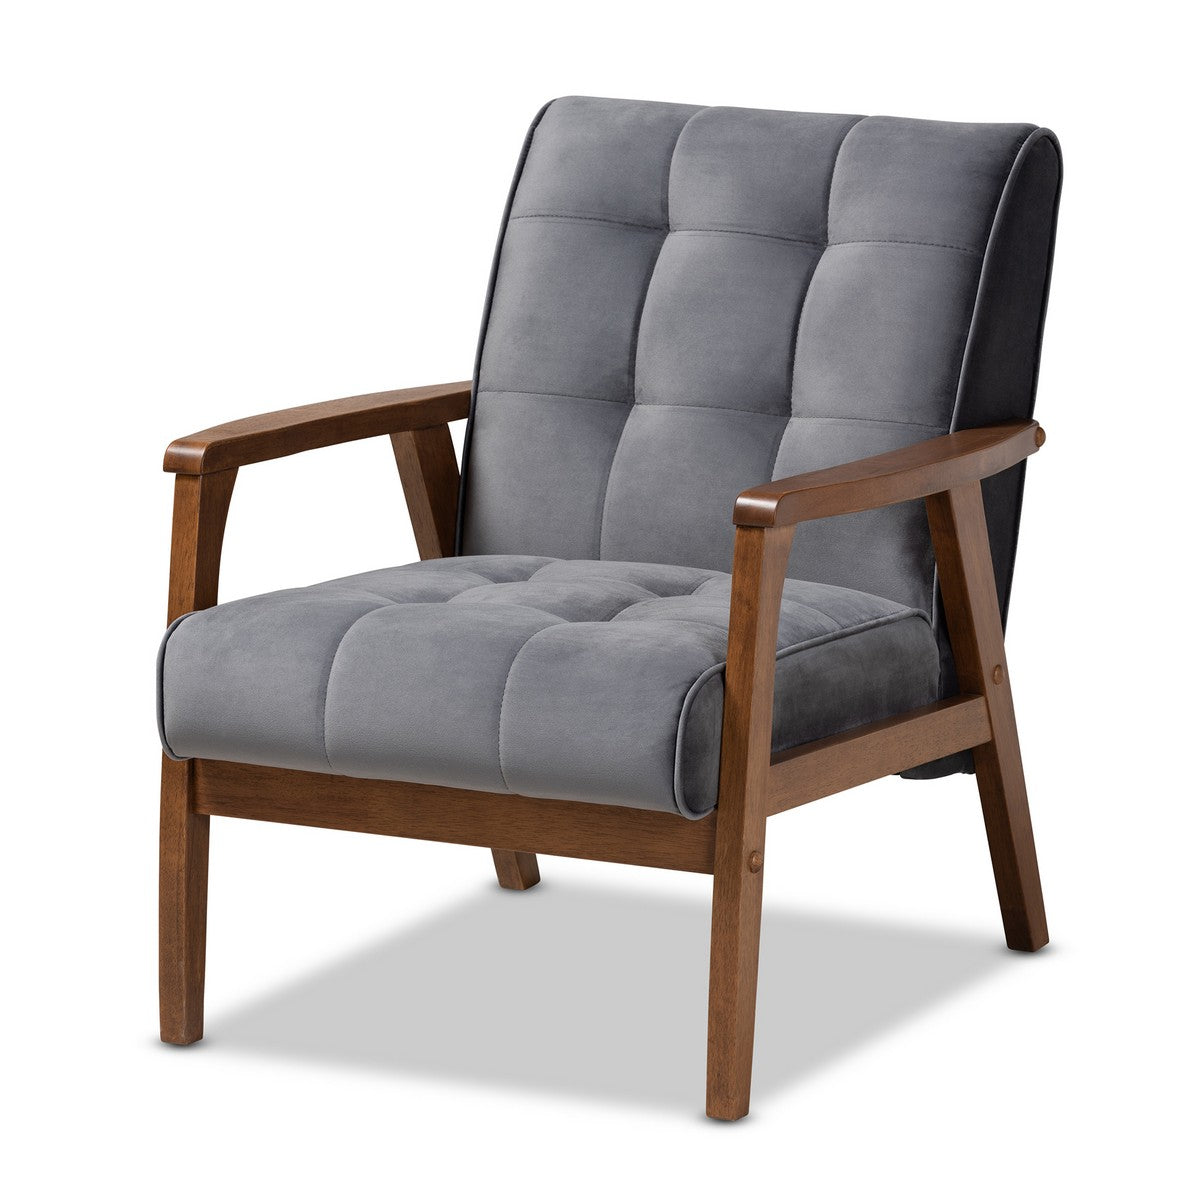 Baxton Studio Asta Mid-Century Modern Grey Velvet Fabric Upholstered Walnut Finished Wood Armchair Baxton Studio- Chairs-Minimal And Modern - 1